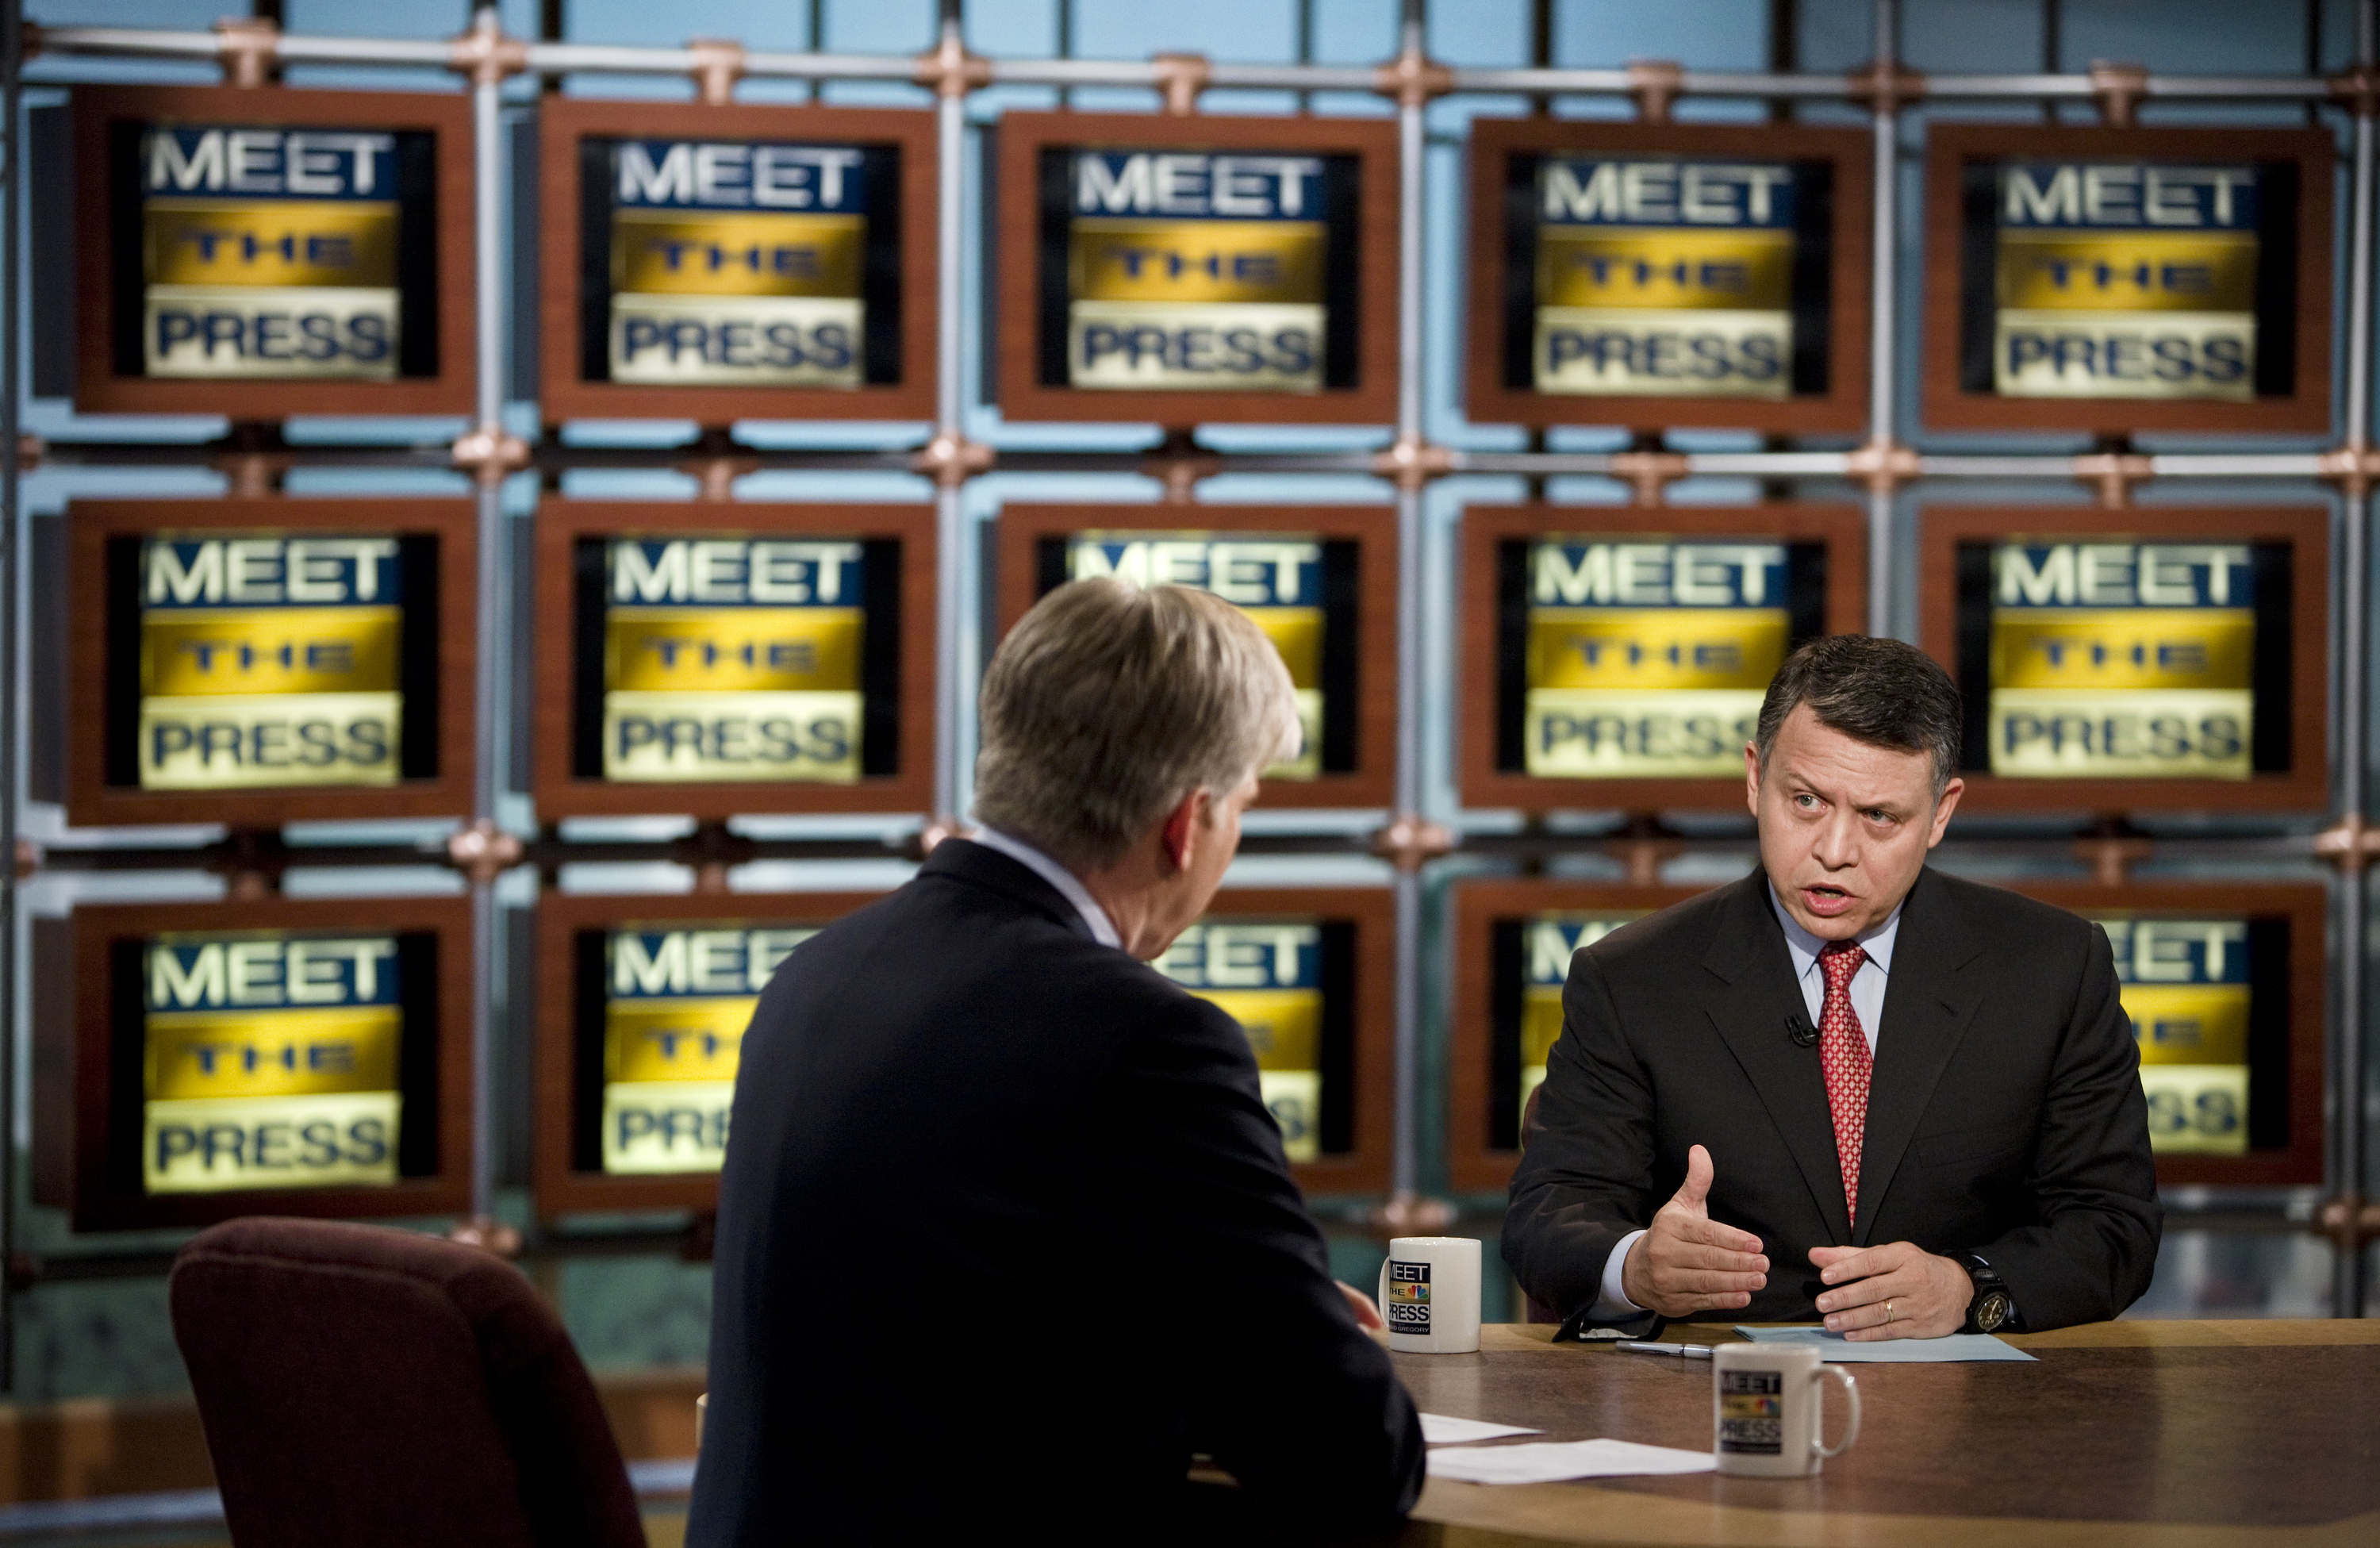 "David Gregory (L) listens to King Abdullah II of Jordan (R) speak during a pre-taping of ""Meet the Press"" at NBC April 24, 2009 in Washington, DC. King Abdullah II of Jordan spoke about his recent trip to the United States and the Middle East peace process. (Photo by Brendan Smialowski/Getty Images for Meet the Press)"